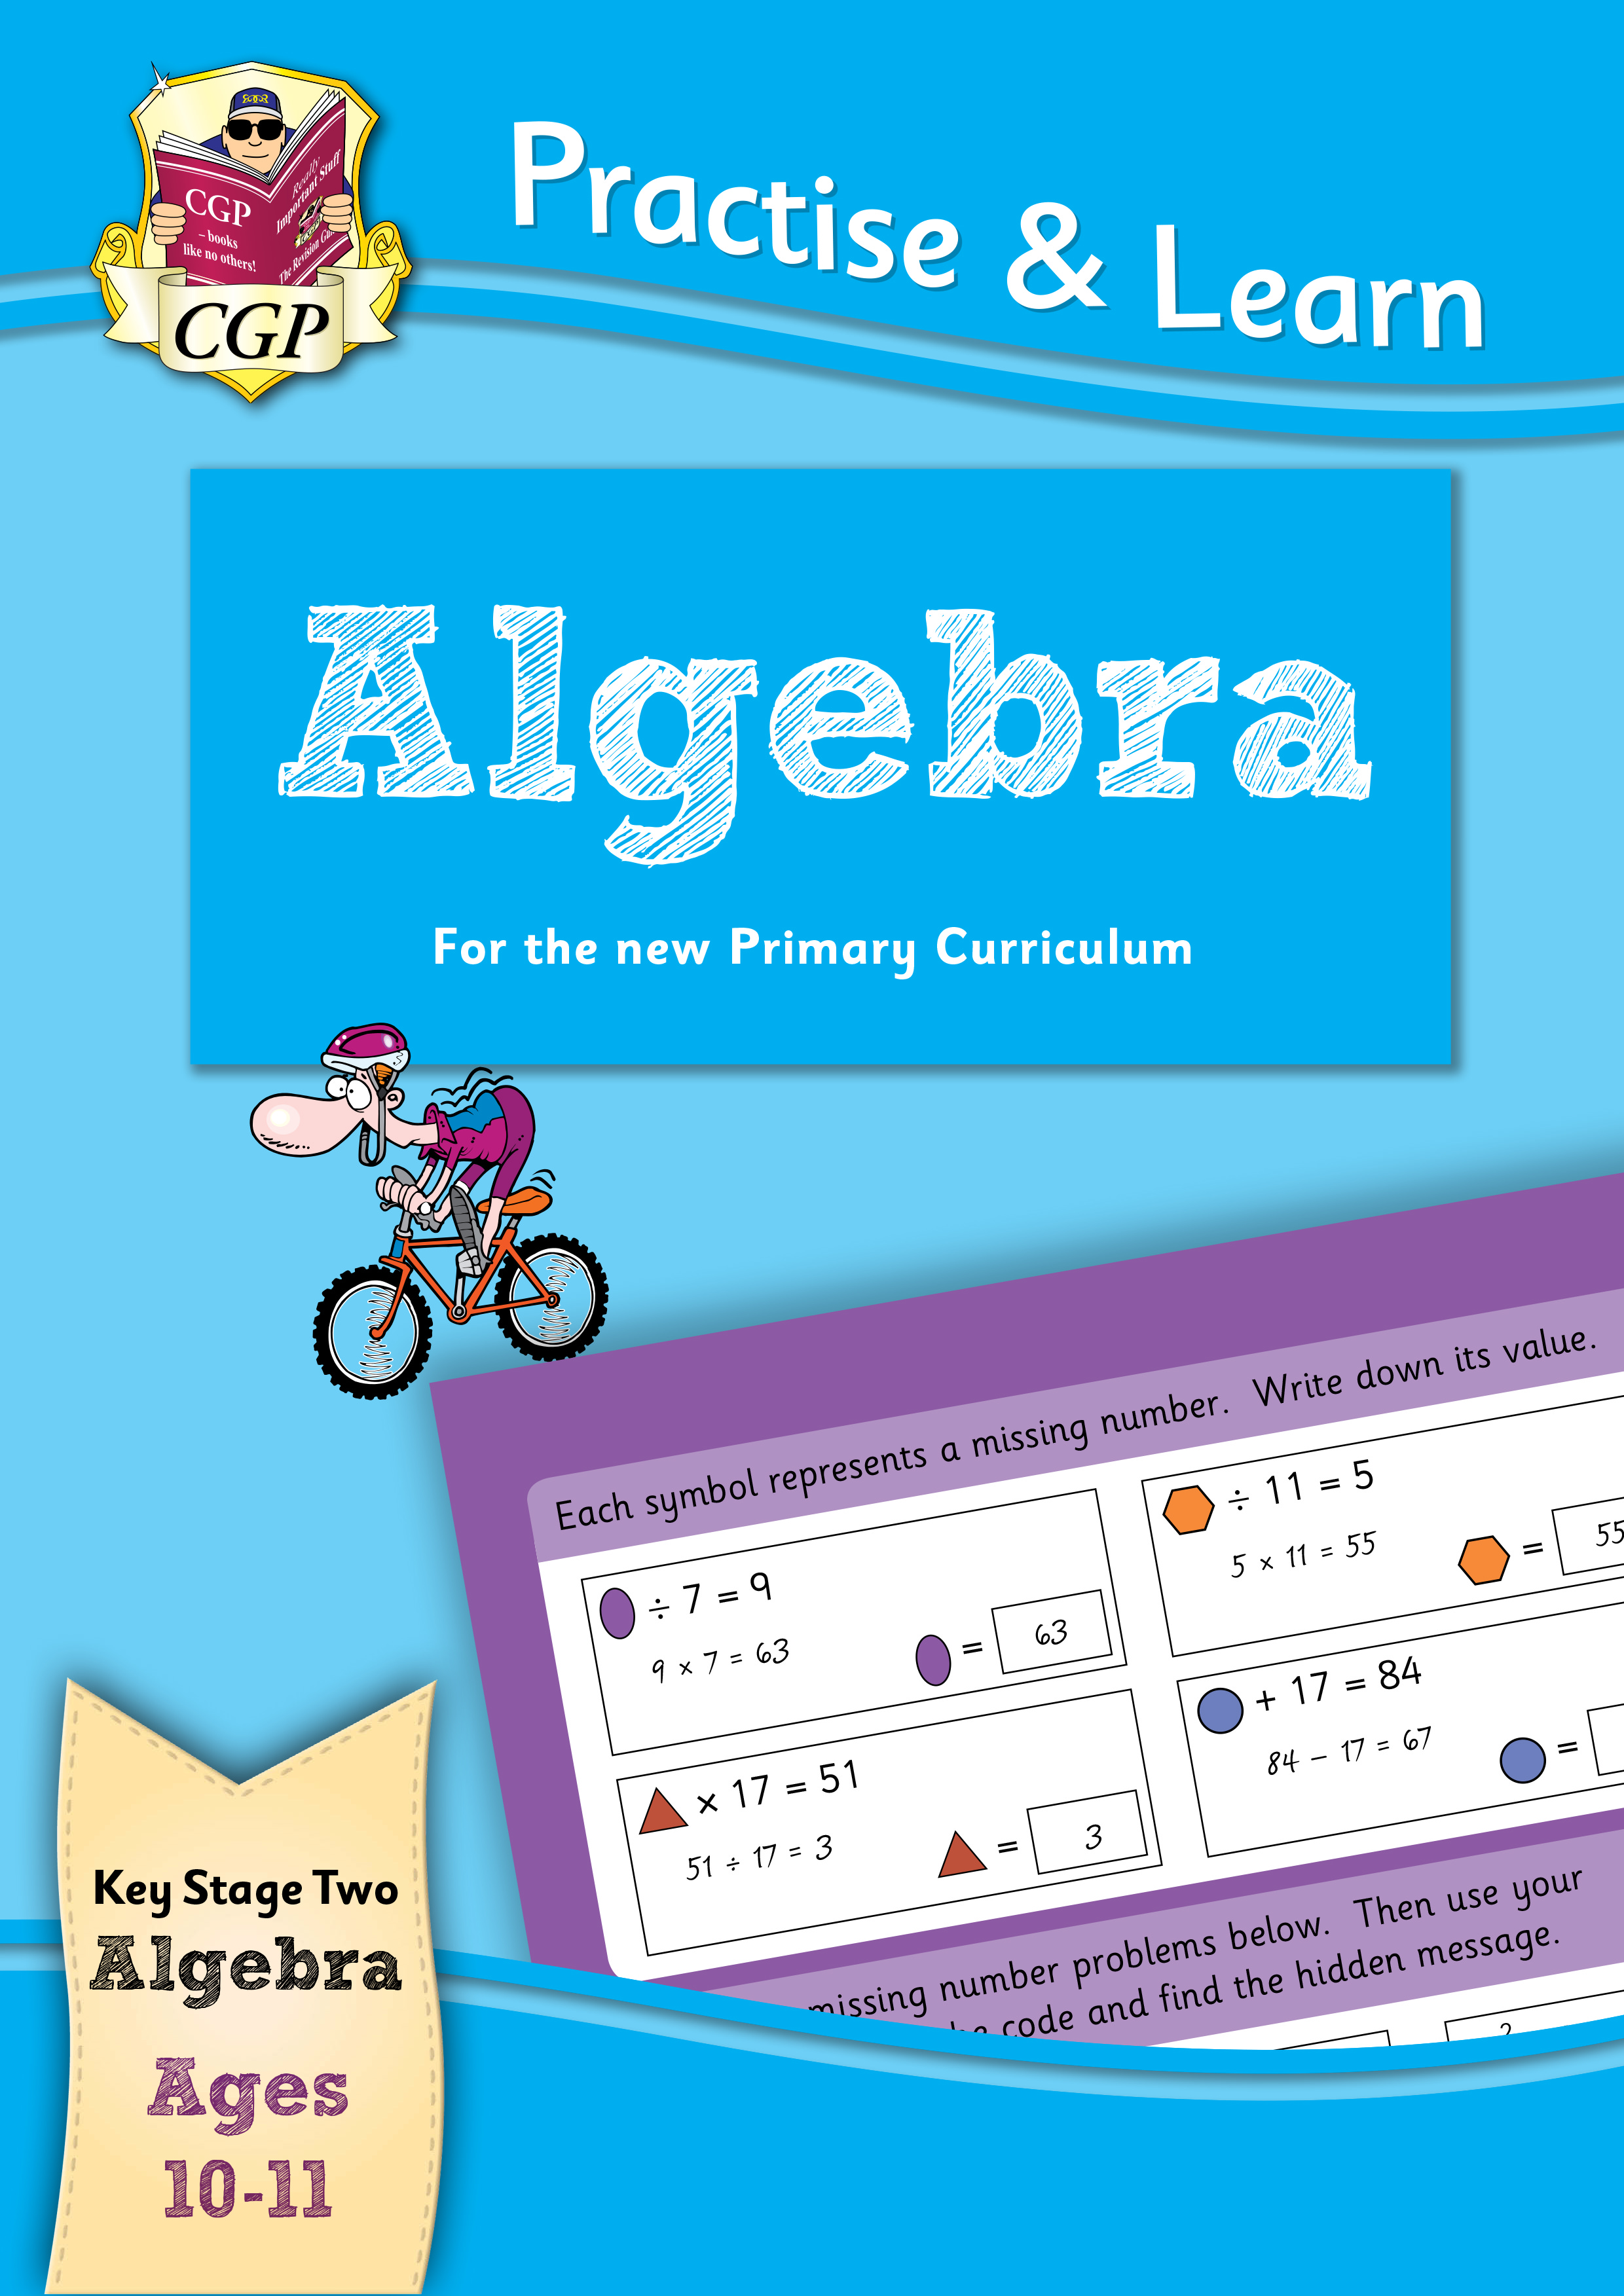 MP6AL22DK - New Curriculum Practise & Learn: Algebra for Ages 10-11